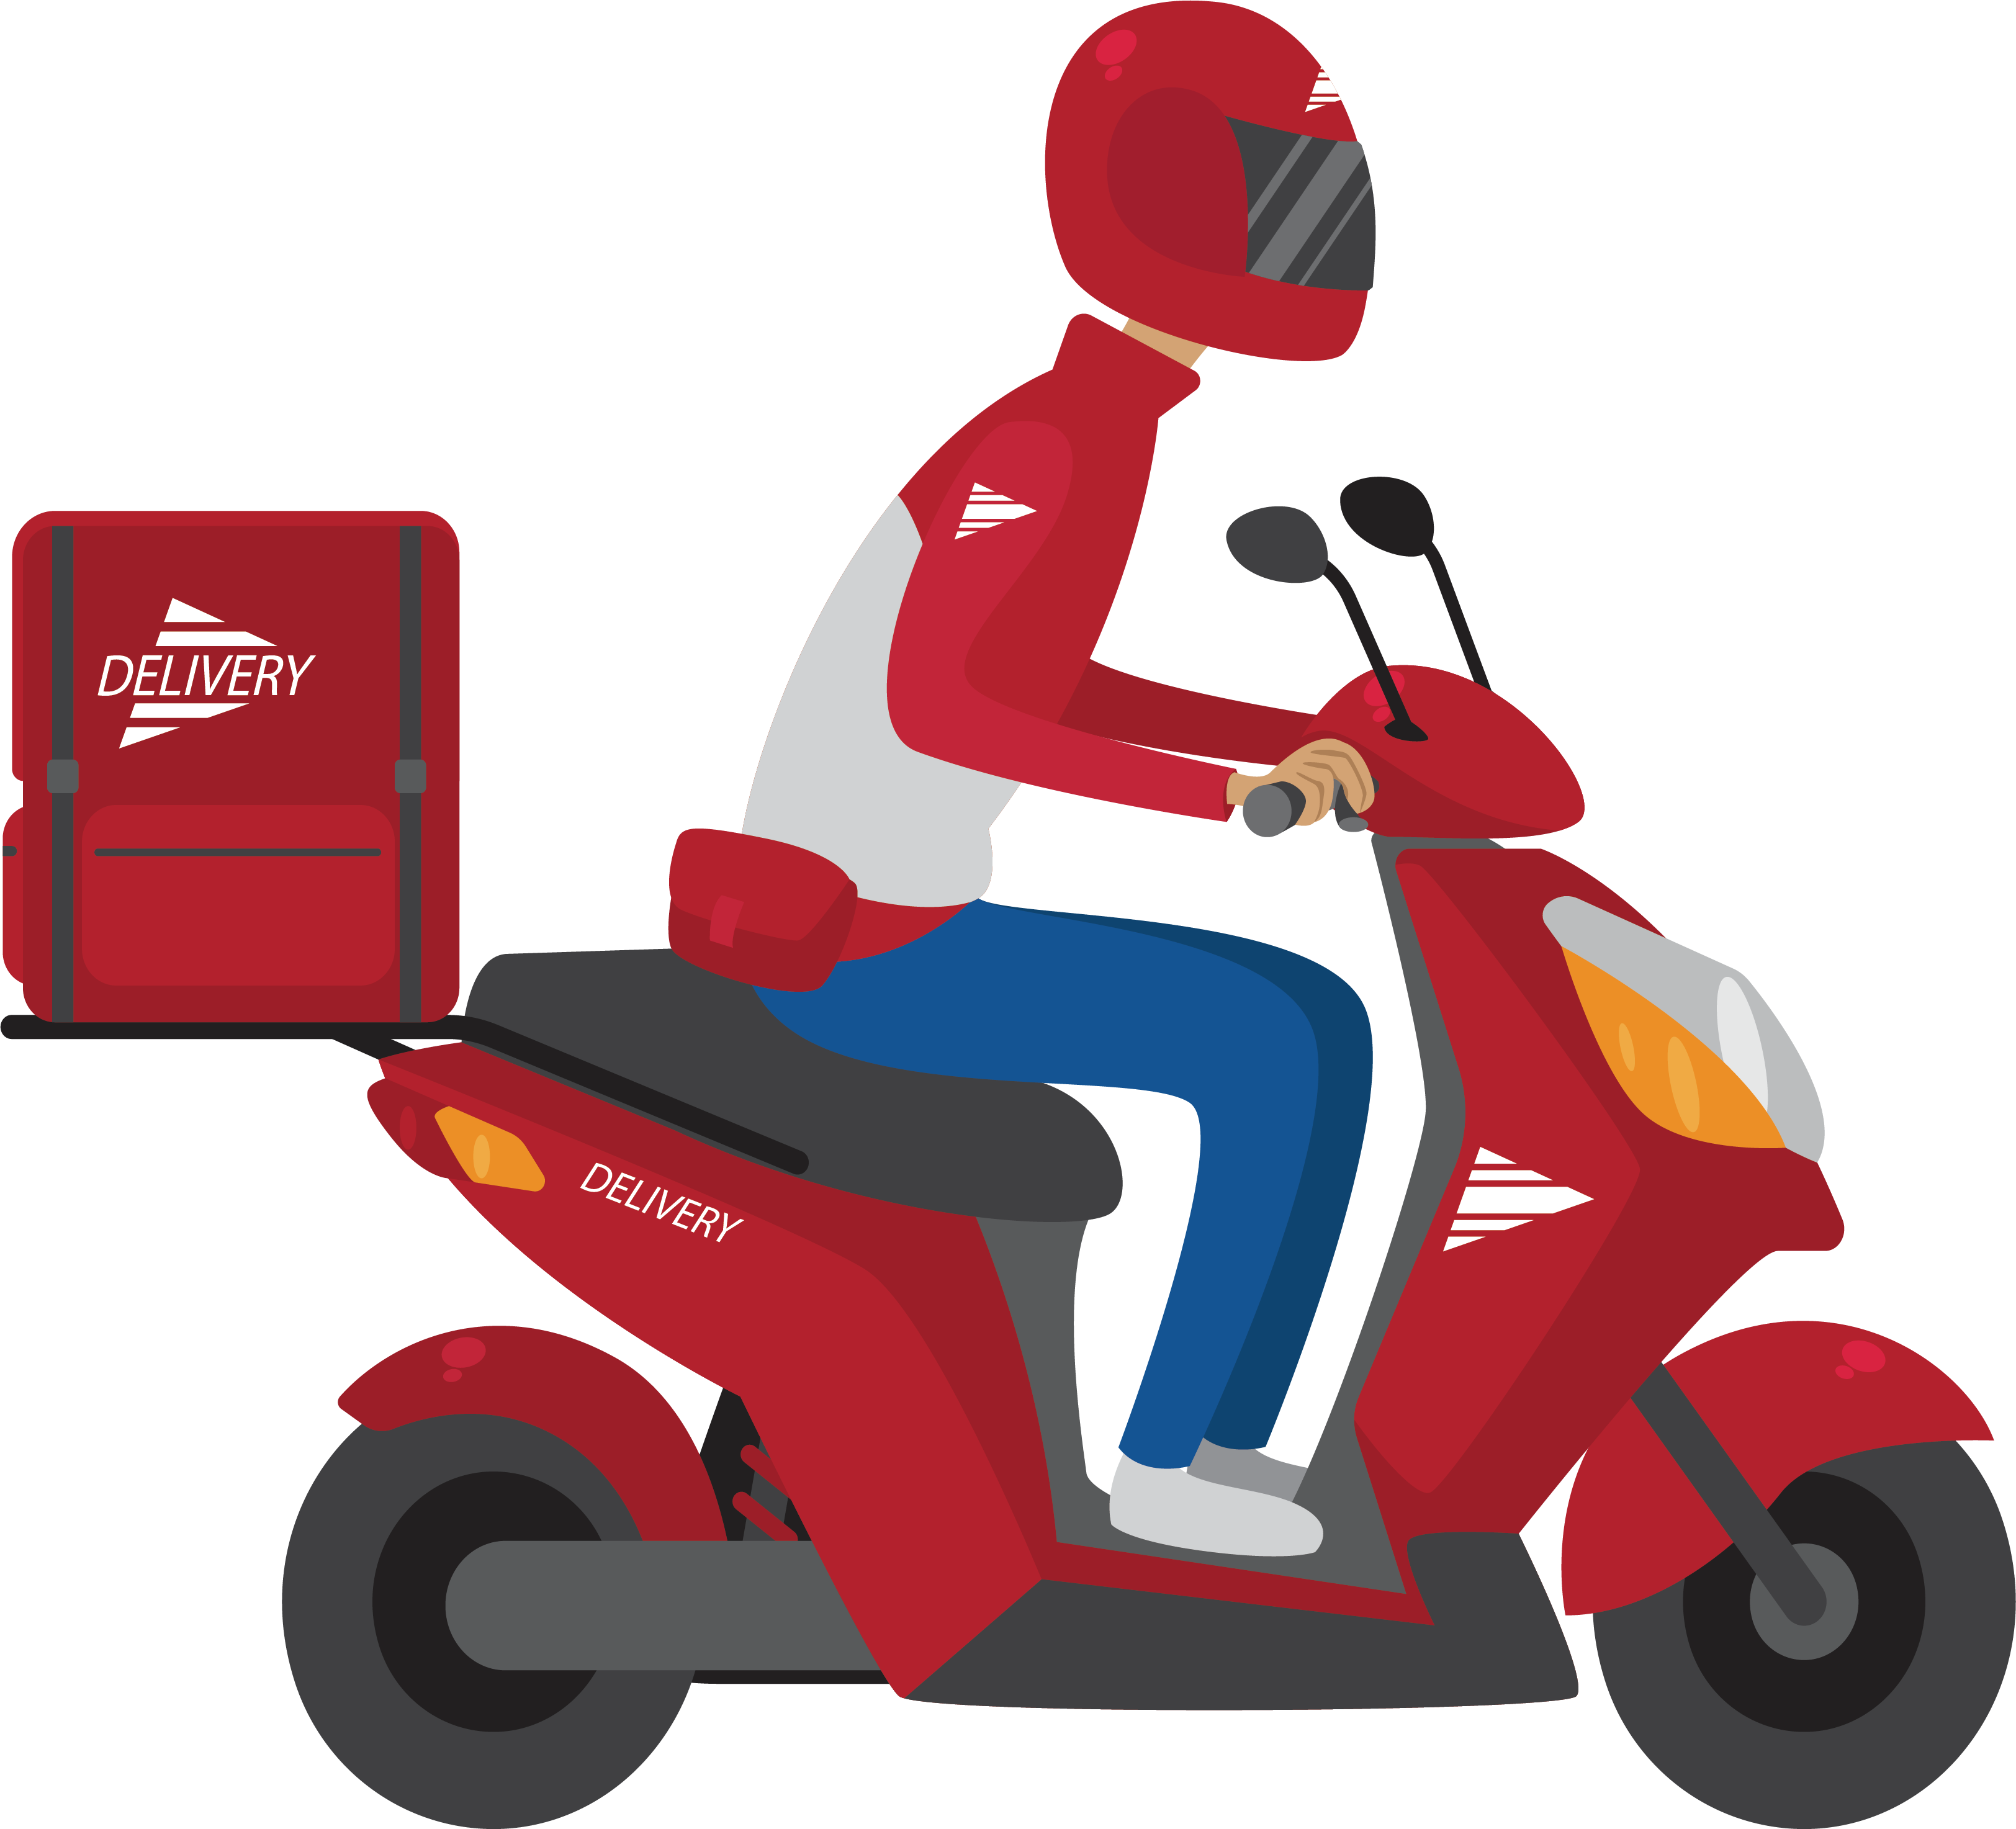 Scooter clipart delivery scooter. Take out adobe illustrator